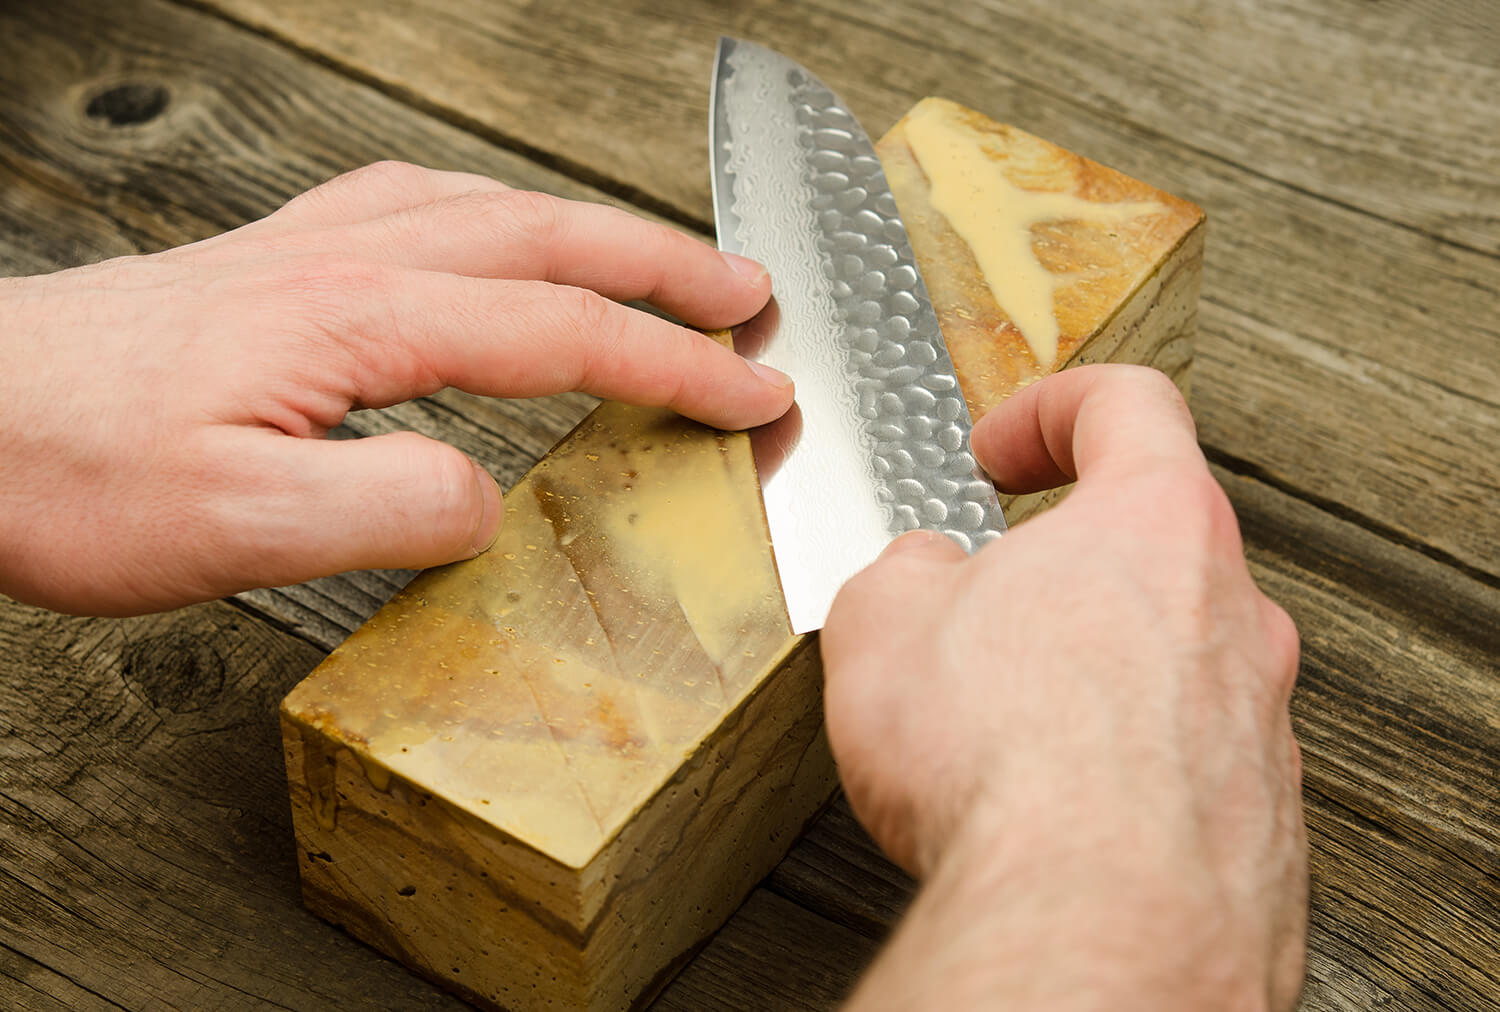 Whetstone Grit for Knife Sharpening - Which One To Choose & Why